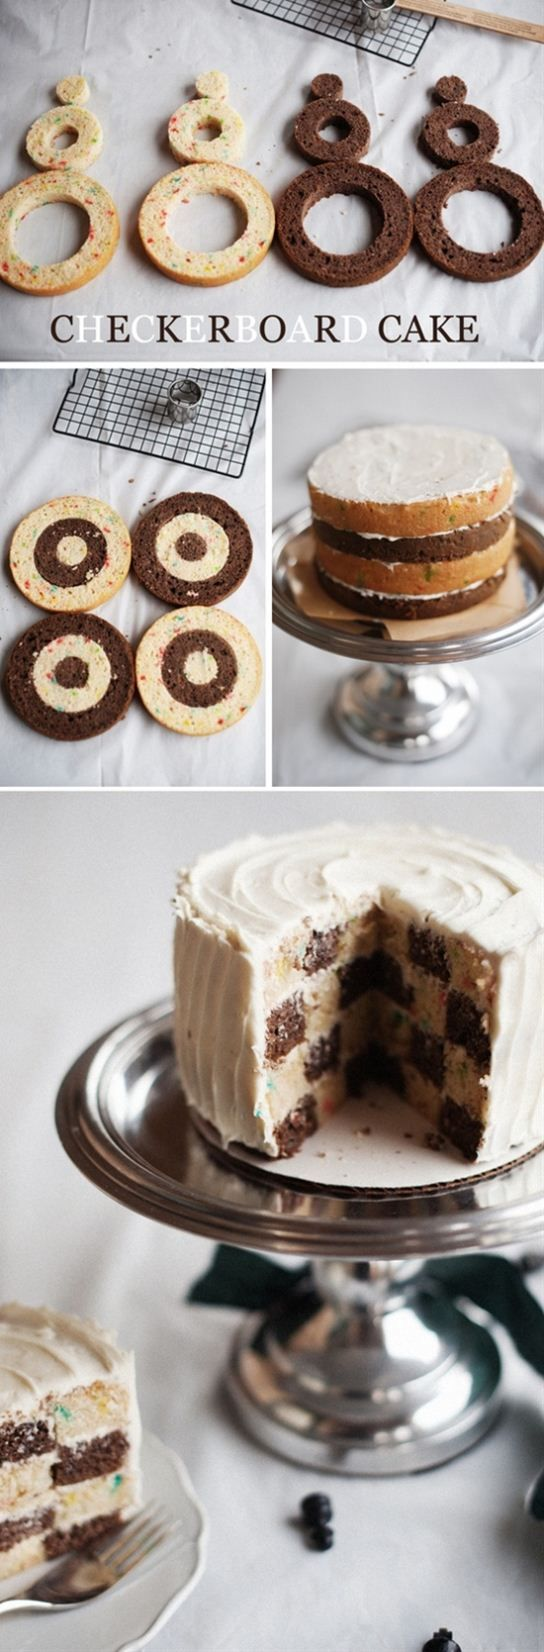 photo tutorial: chocolate and vanilla checkerboard cake with out a fancy cake pan ... from Saifou images ... think I could actually do this ...